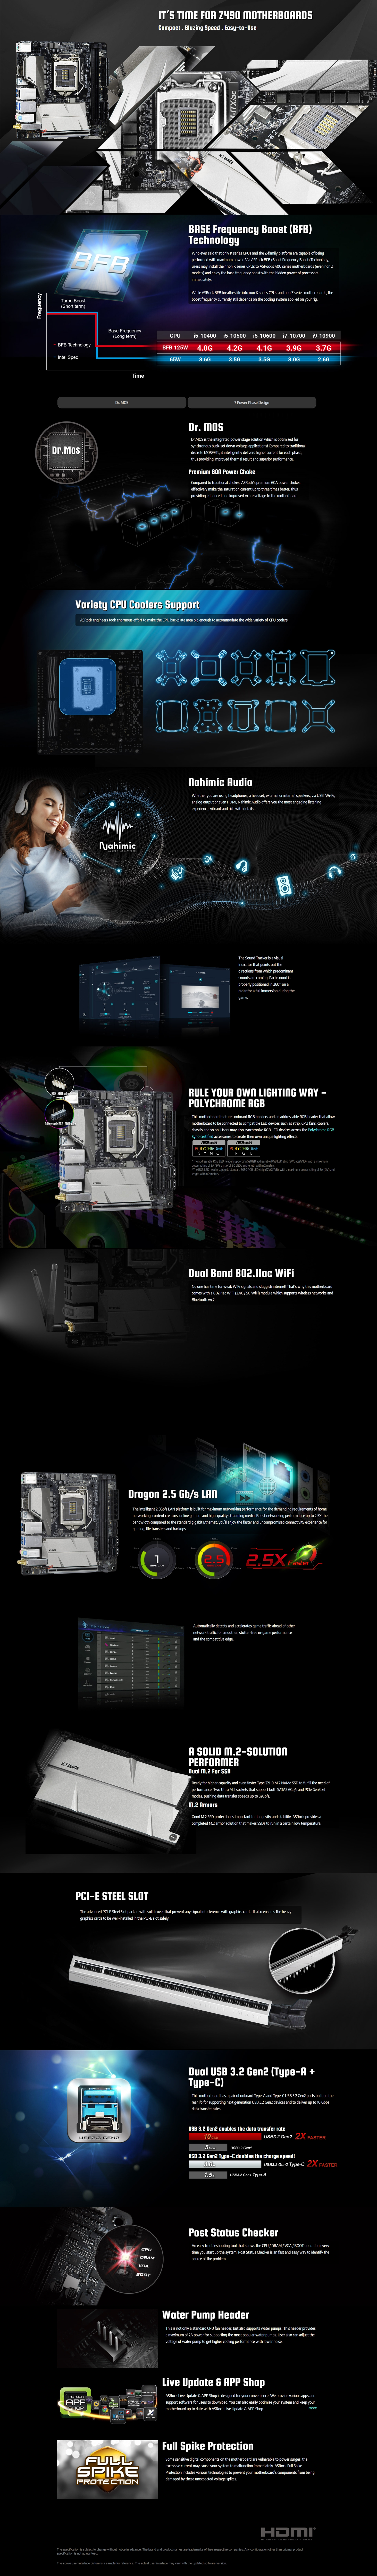 A large marketing image providing additional information about the product ASRock Z490M-ITX/ac LGA1200 mITX Desktop Motherboard - Additional alt info not provided